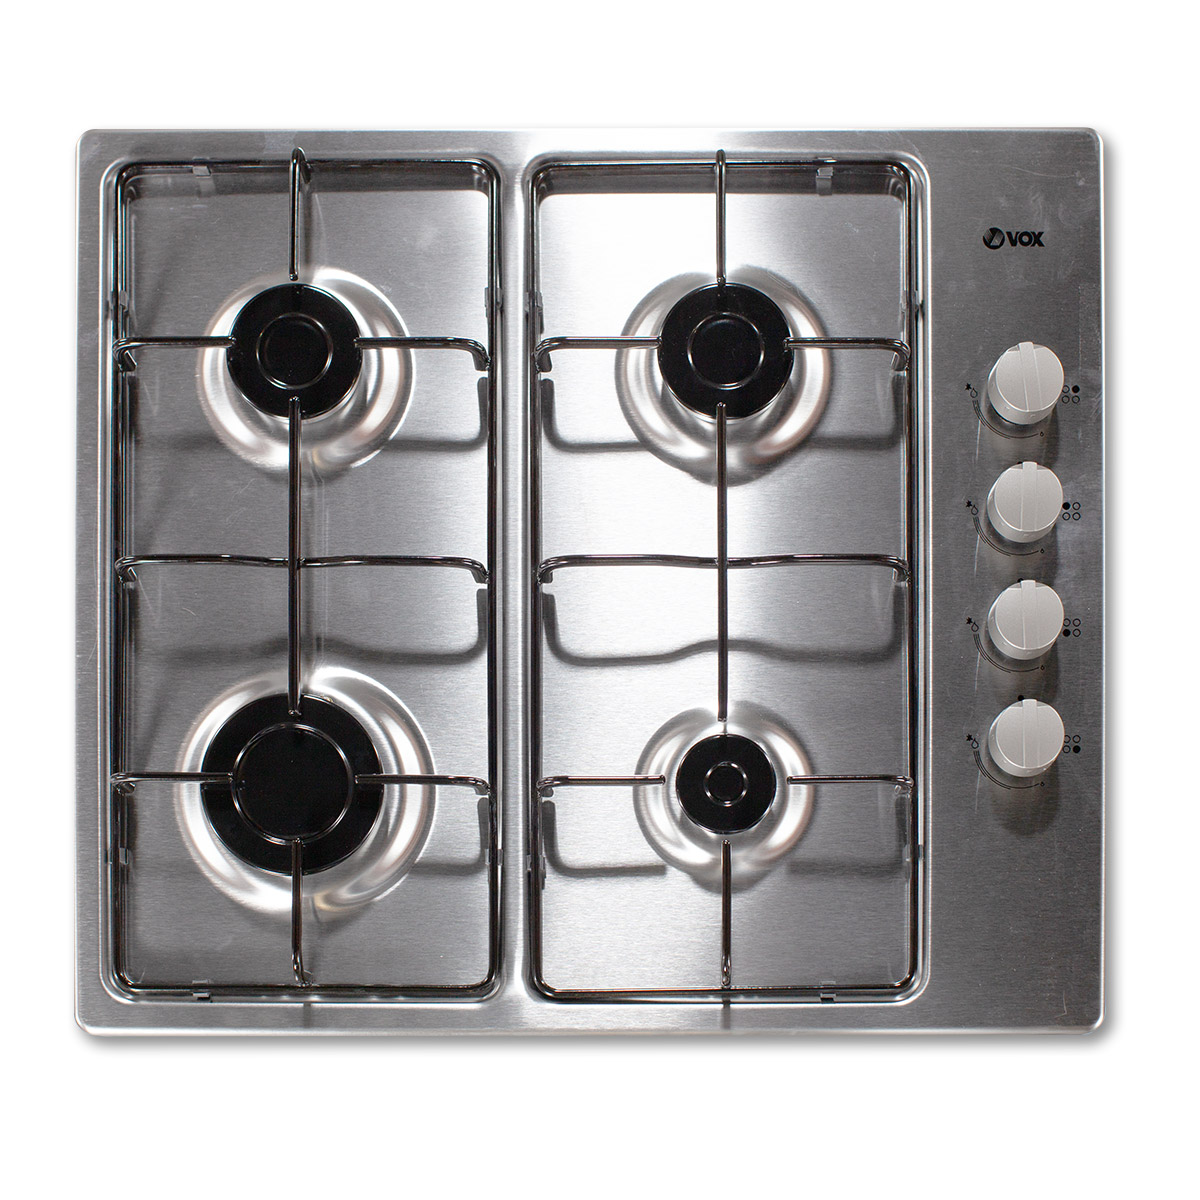 Built-in hob EBG400GIX